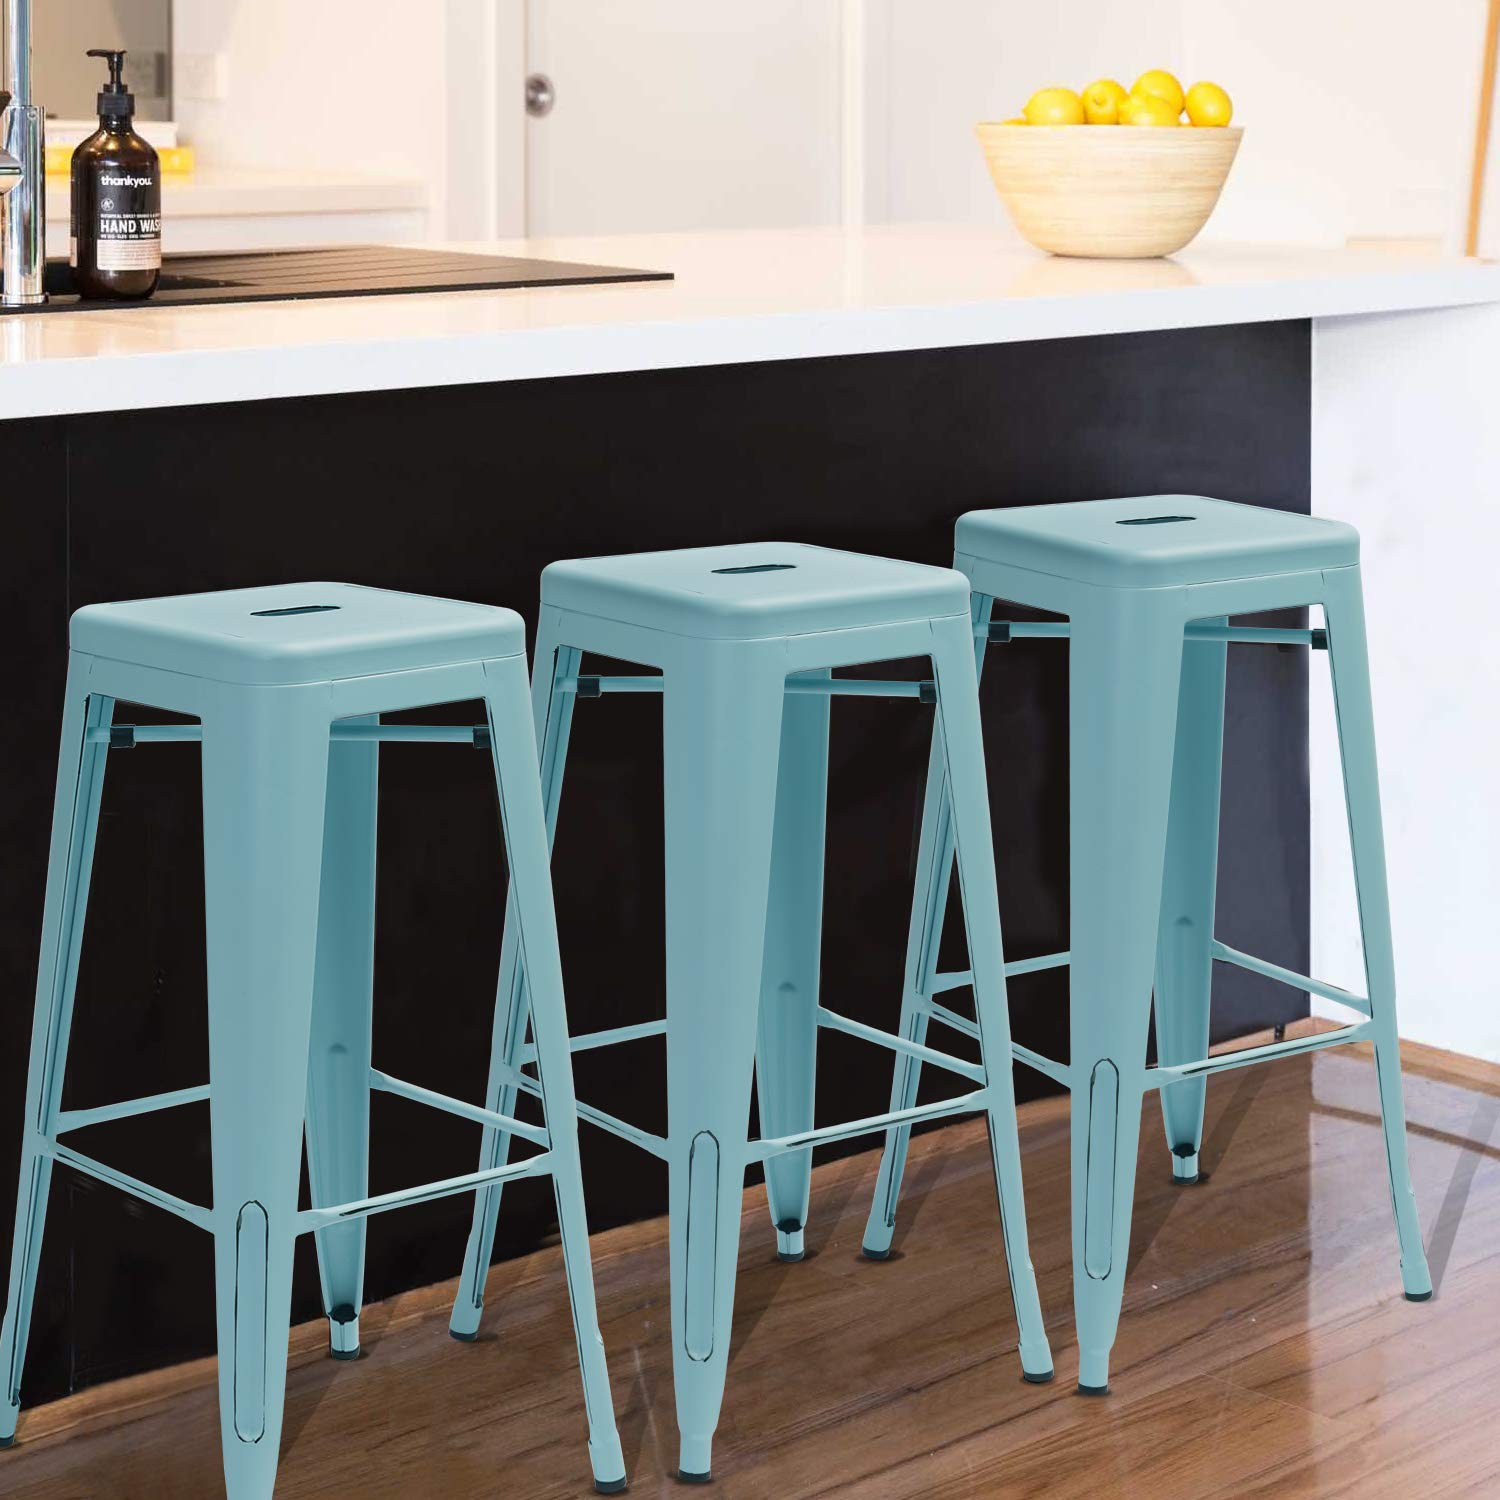 Black Set of 4 Waleaf 24 inches Metal Stools Indoor//Outdoor Counter Height Stackable Bar Stool Modern Style Restaurant Cafe Chic Bistro Side Stool